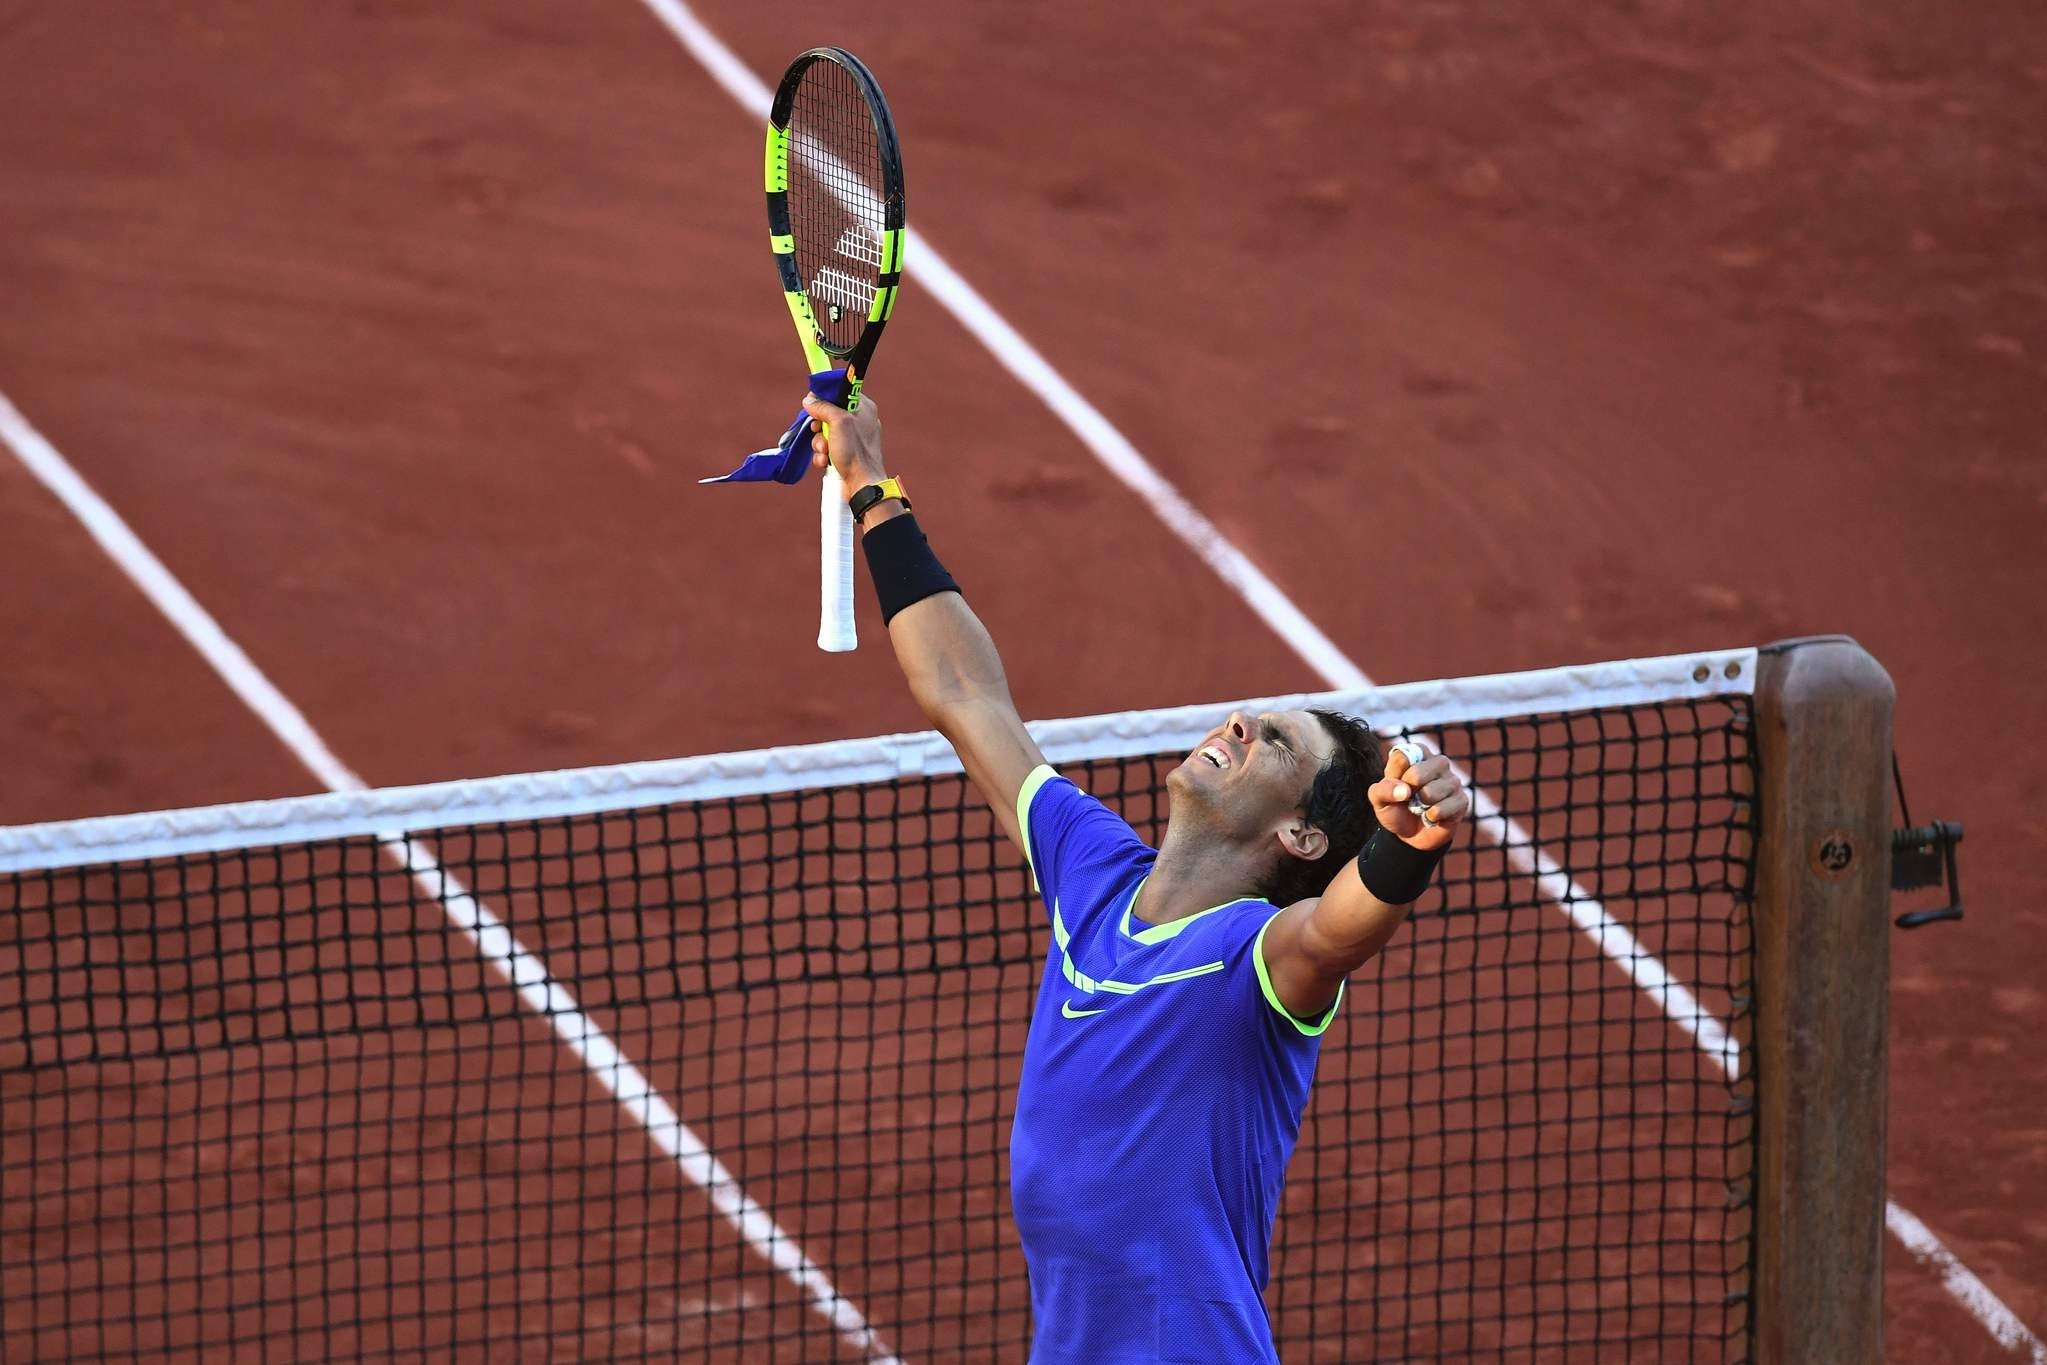 Spain's Rafael Nadal celebrates after winning his semifinal tennis match against Austria's Dominic Thiem at the Roland Garros 2017 French Open on June 9, 2017 in Paris. (AFP Photo)